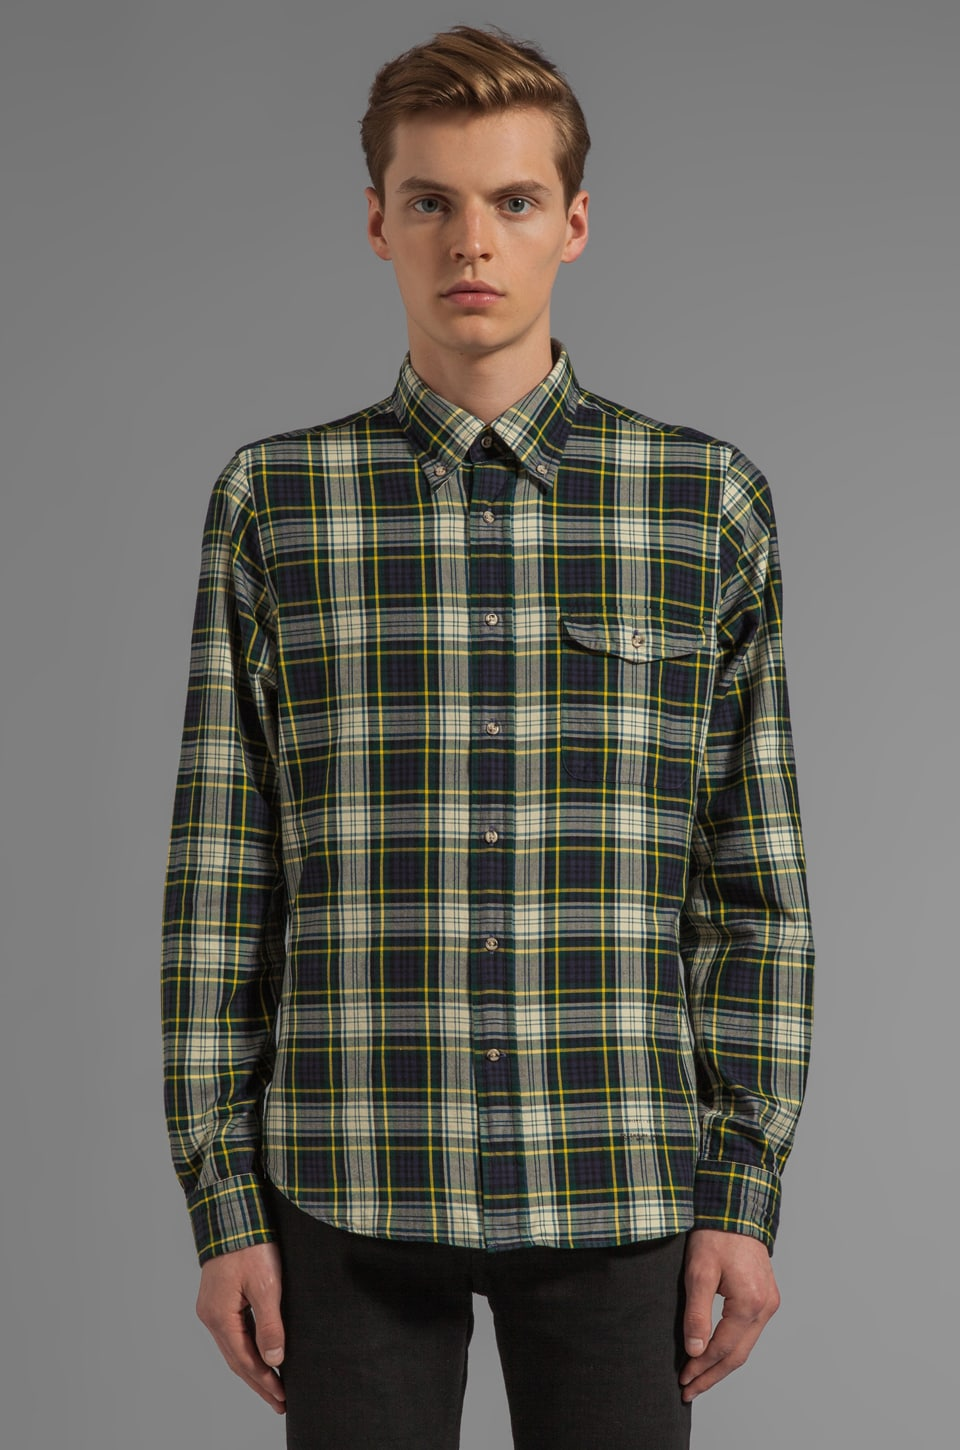 GANT Rugger Bleecker Twill Tartan Button Down in Green Multi